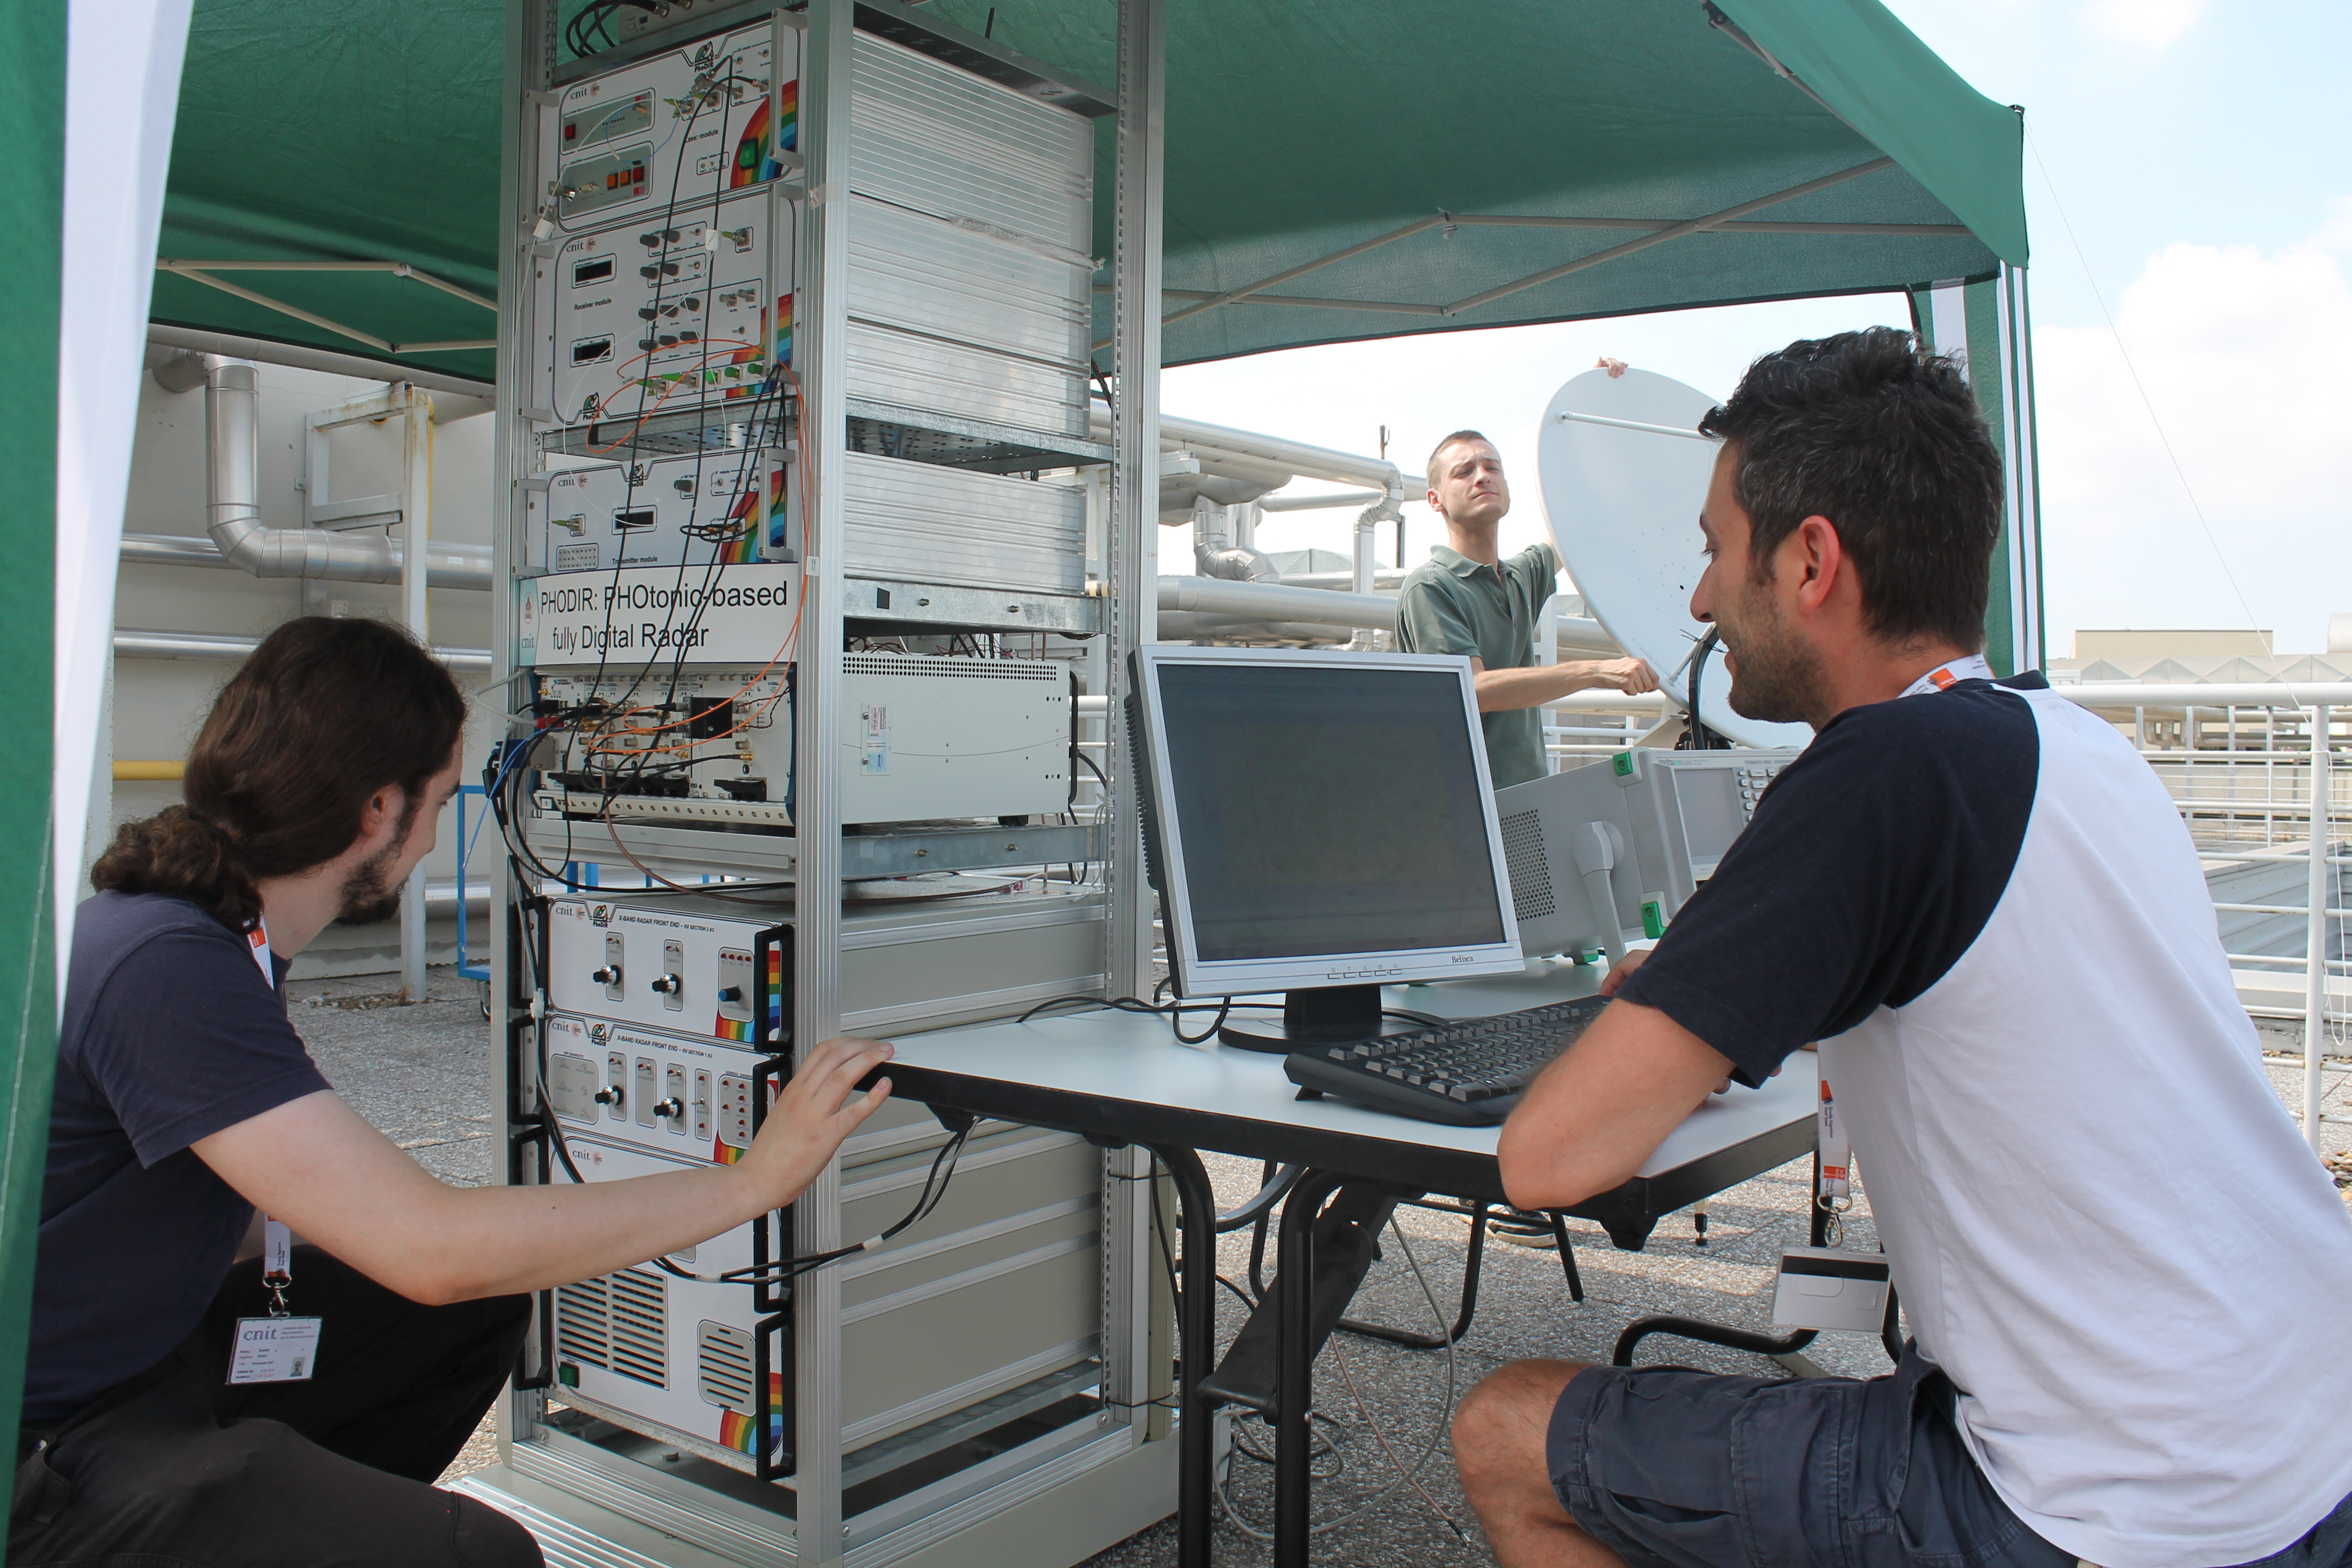 describe the benefits of mobile technology essay Background and history mobile phones technology is founded on the radio technology developed in the 1940, which formed the foundation for the innovations in police vehicles and cabs, where two way radios allowed two way communications.